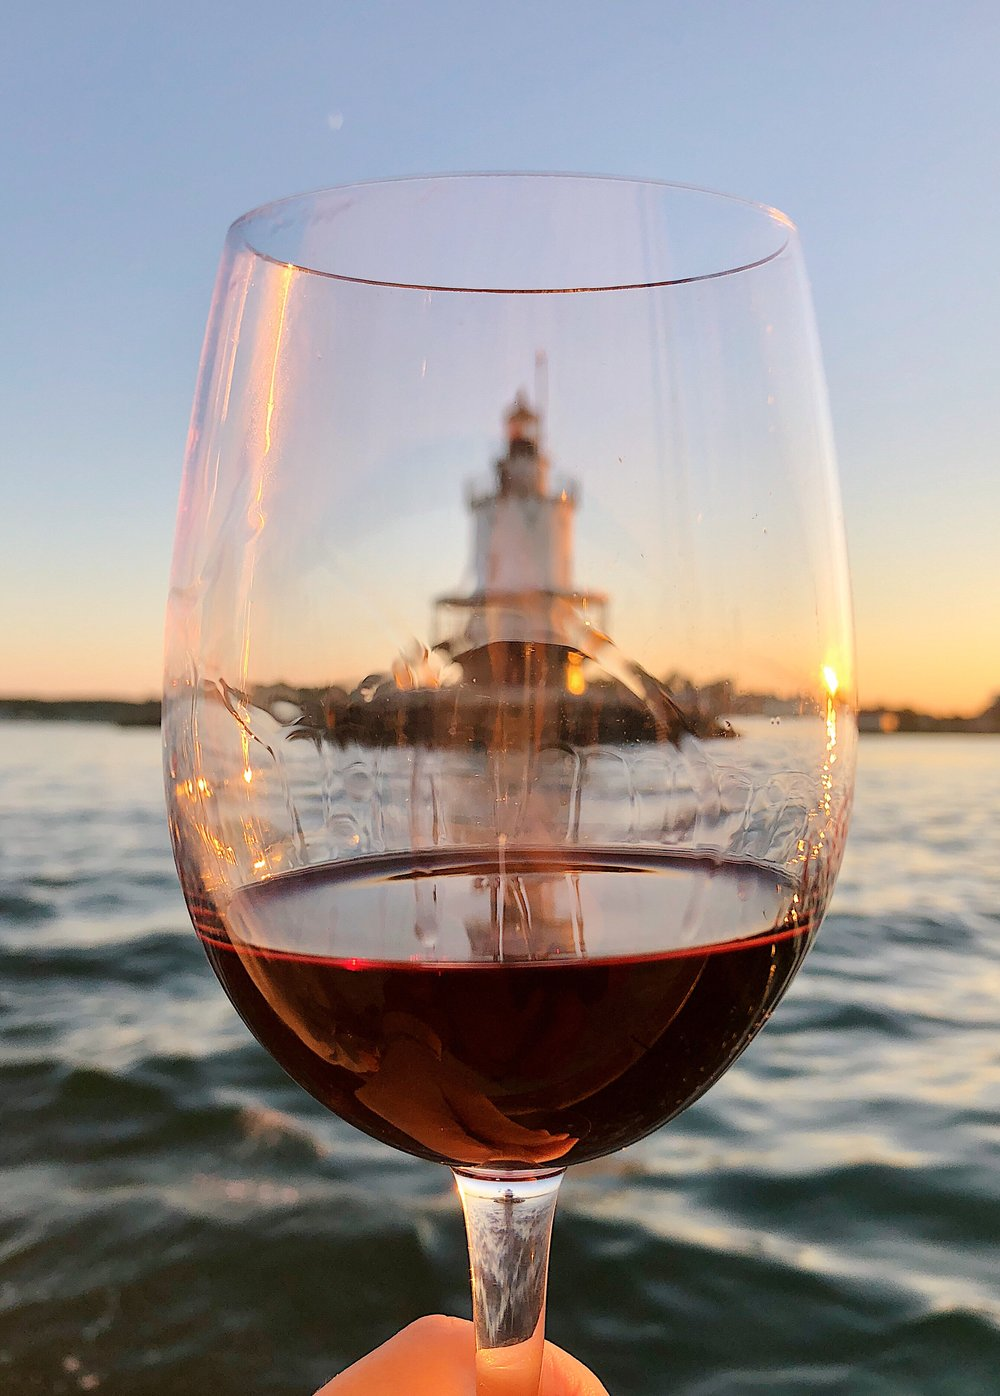 wine_sail_winewise_portlandmaine_lighthouse.jpg